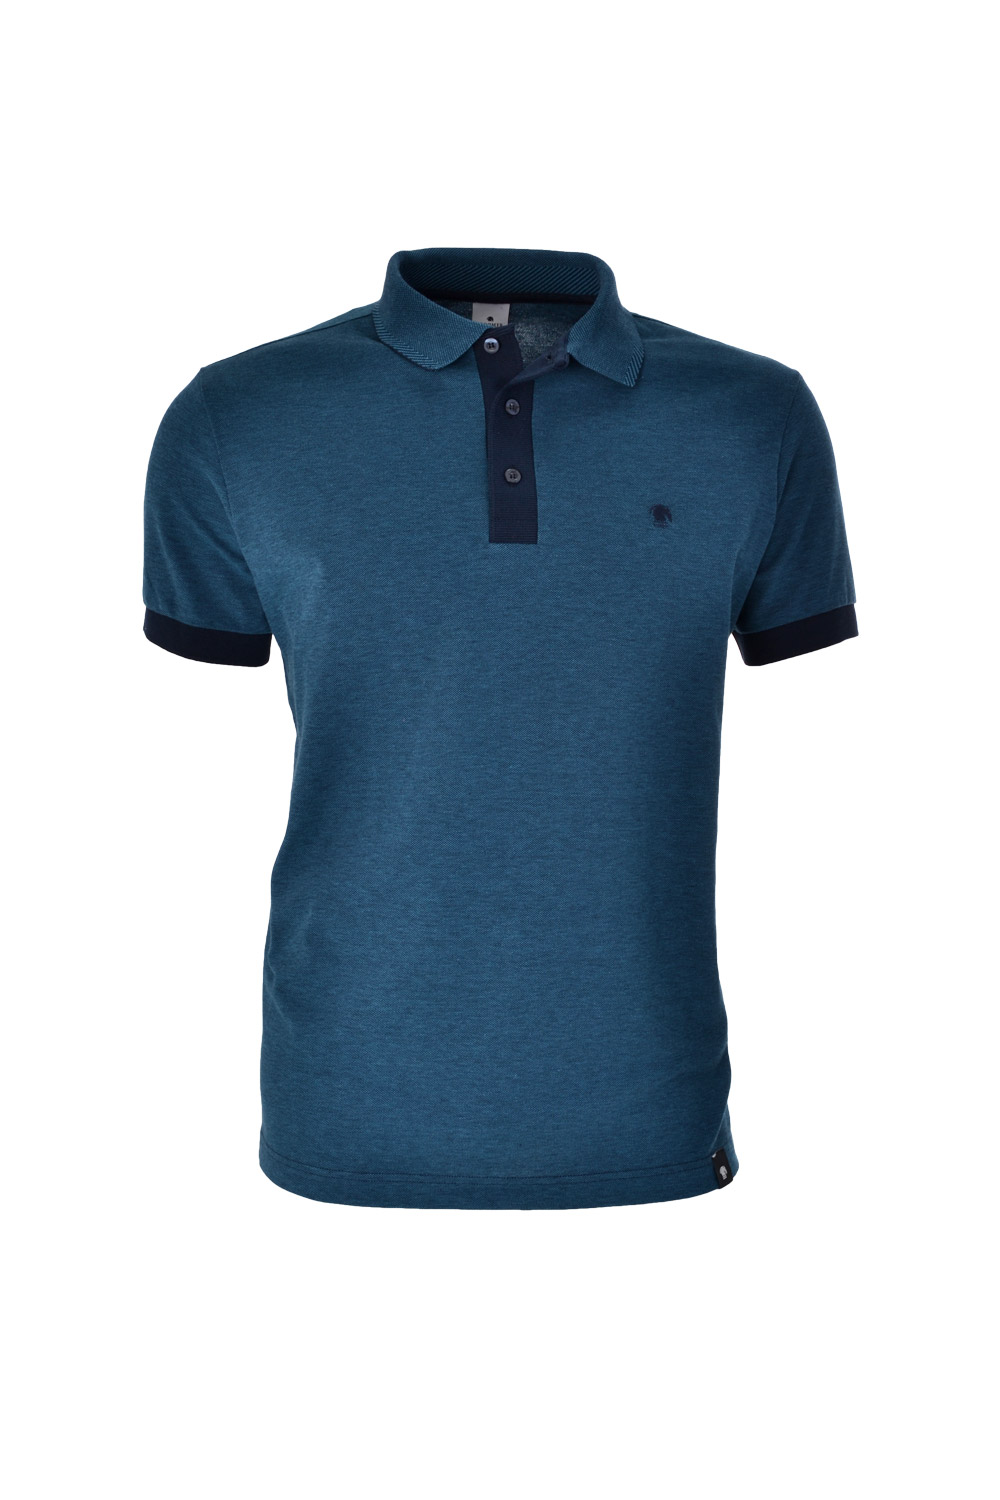 POLO MC CASUAL ALGODAO & ELASTANO STRETCH PIQUET CONTRASTE